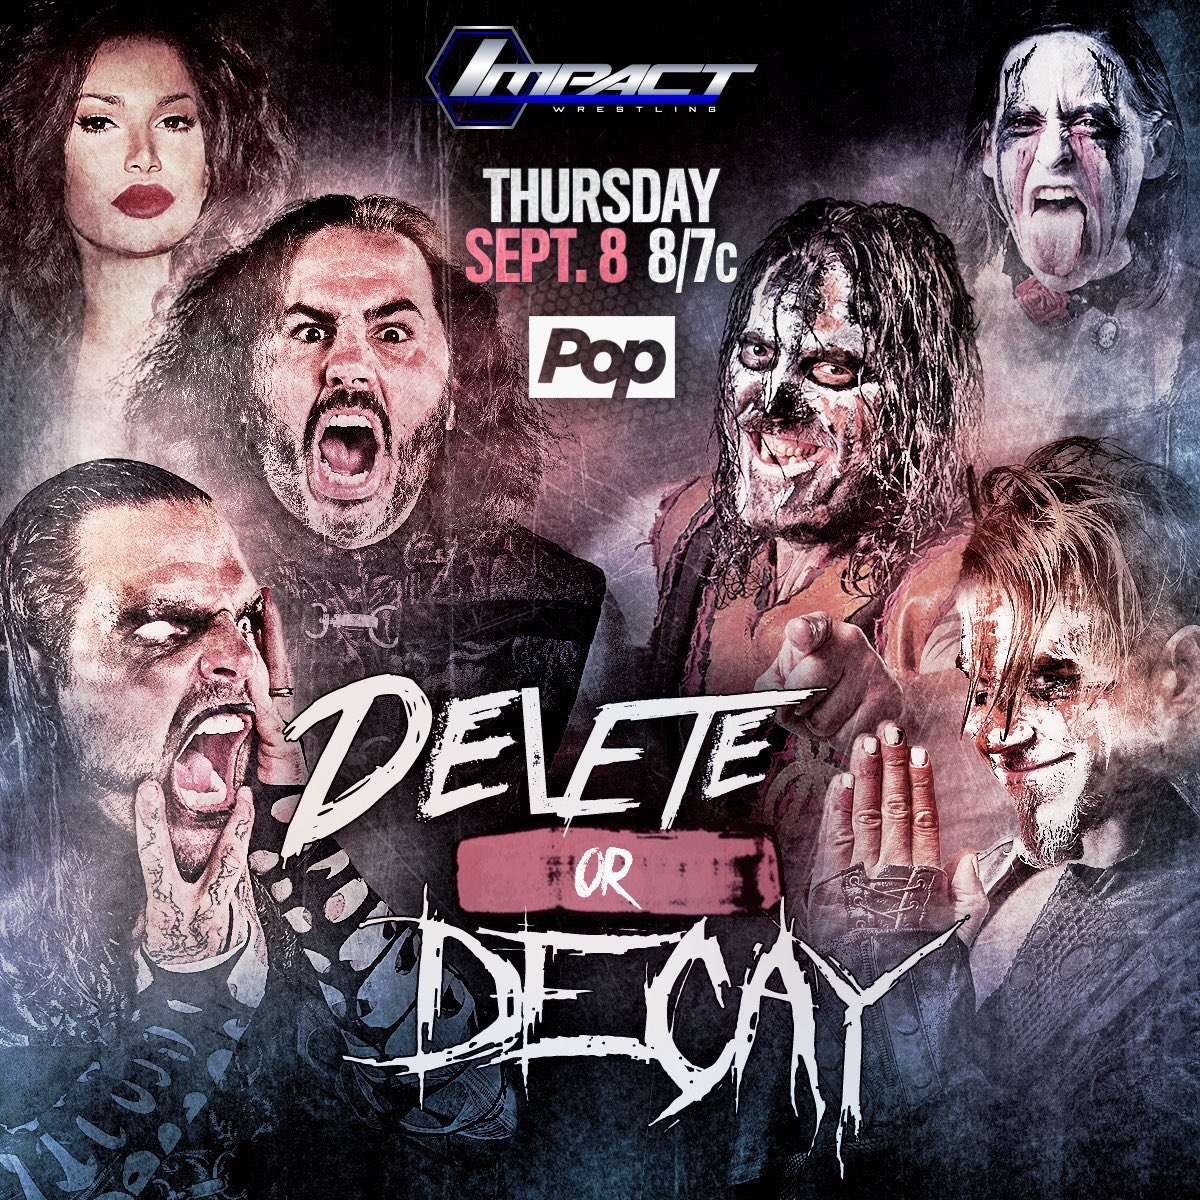 Dont miss #IMPACTonPOP tonight. The world premiere of #DELETEorDECAY needs to be seen by ALL. @IMPACTWRESTLING https://t.co/wJComfrx0D